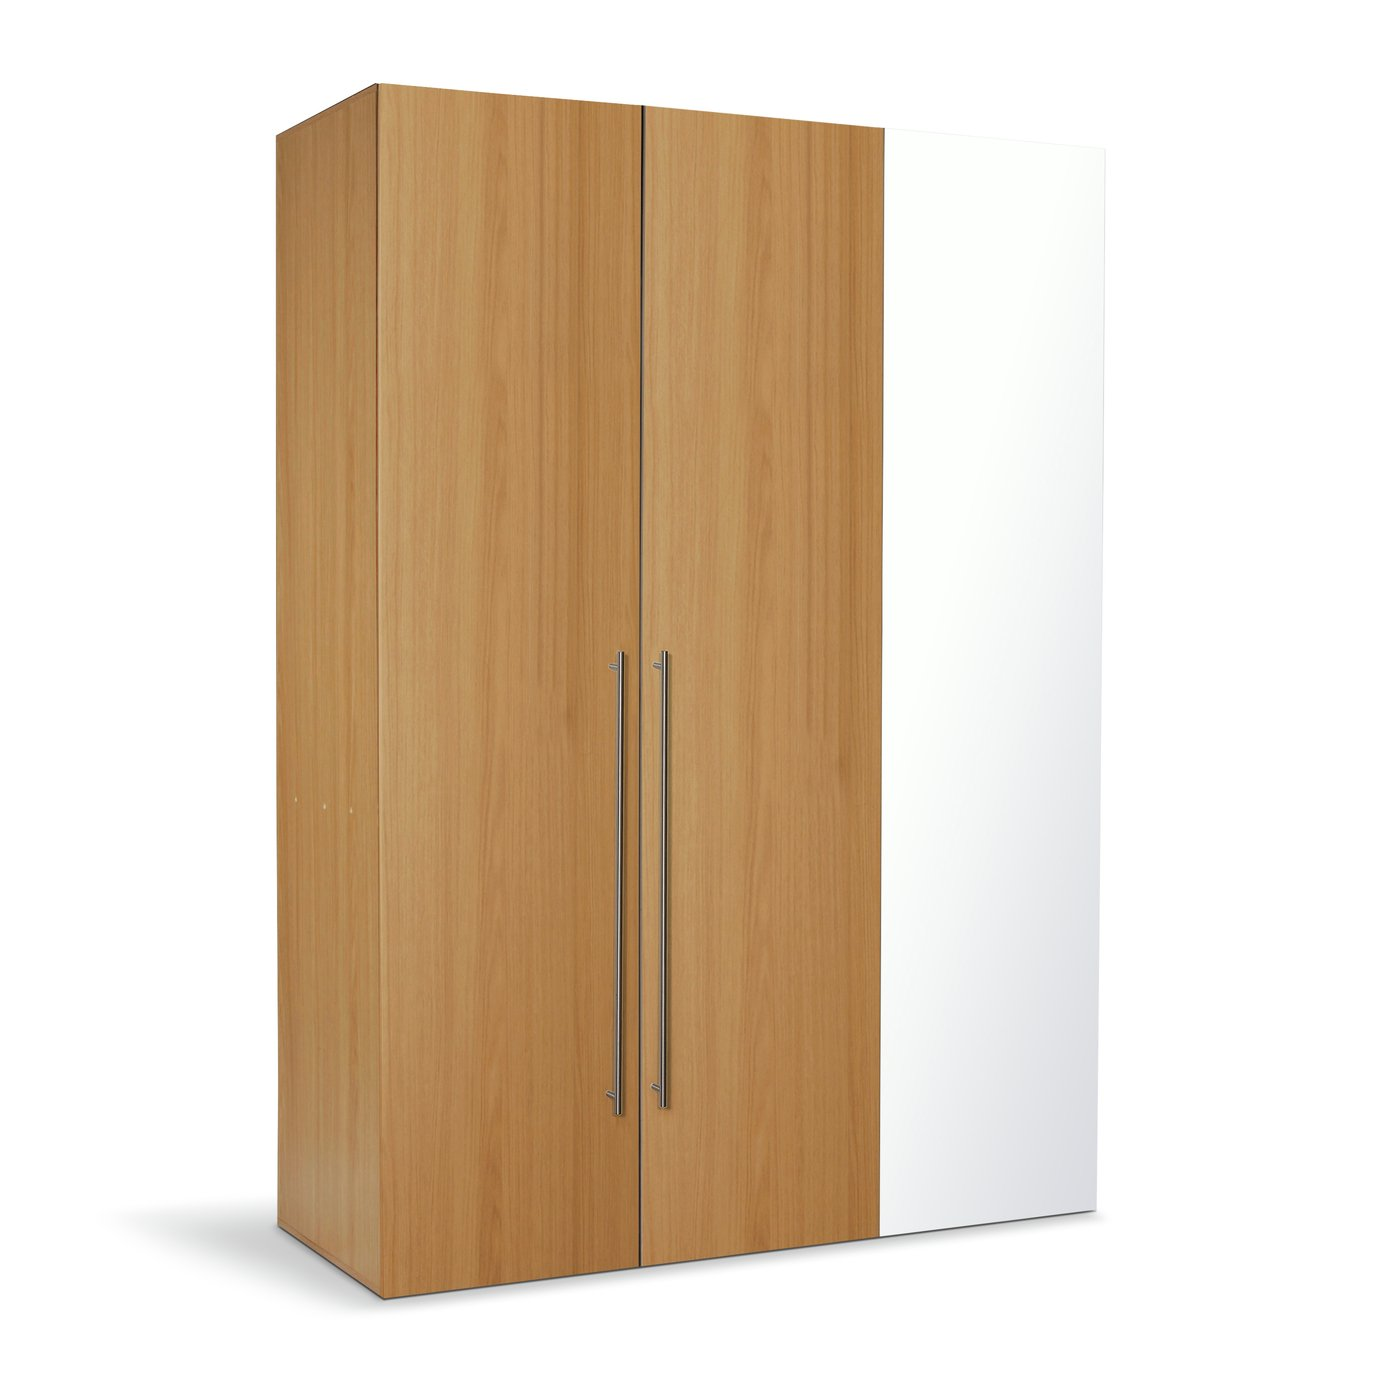 Argos Home Atlas 3 Door Mirrored Wardrobe